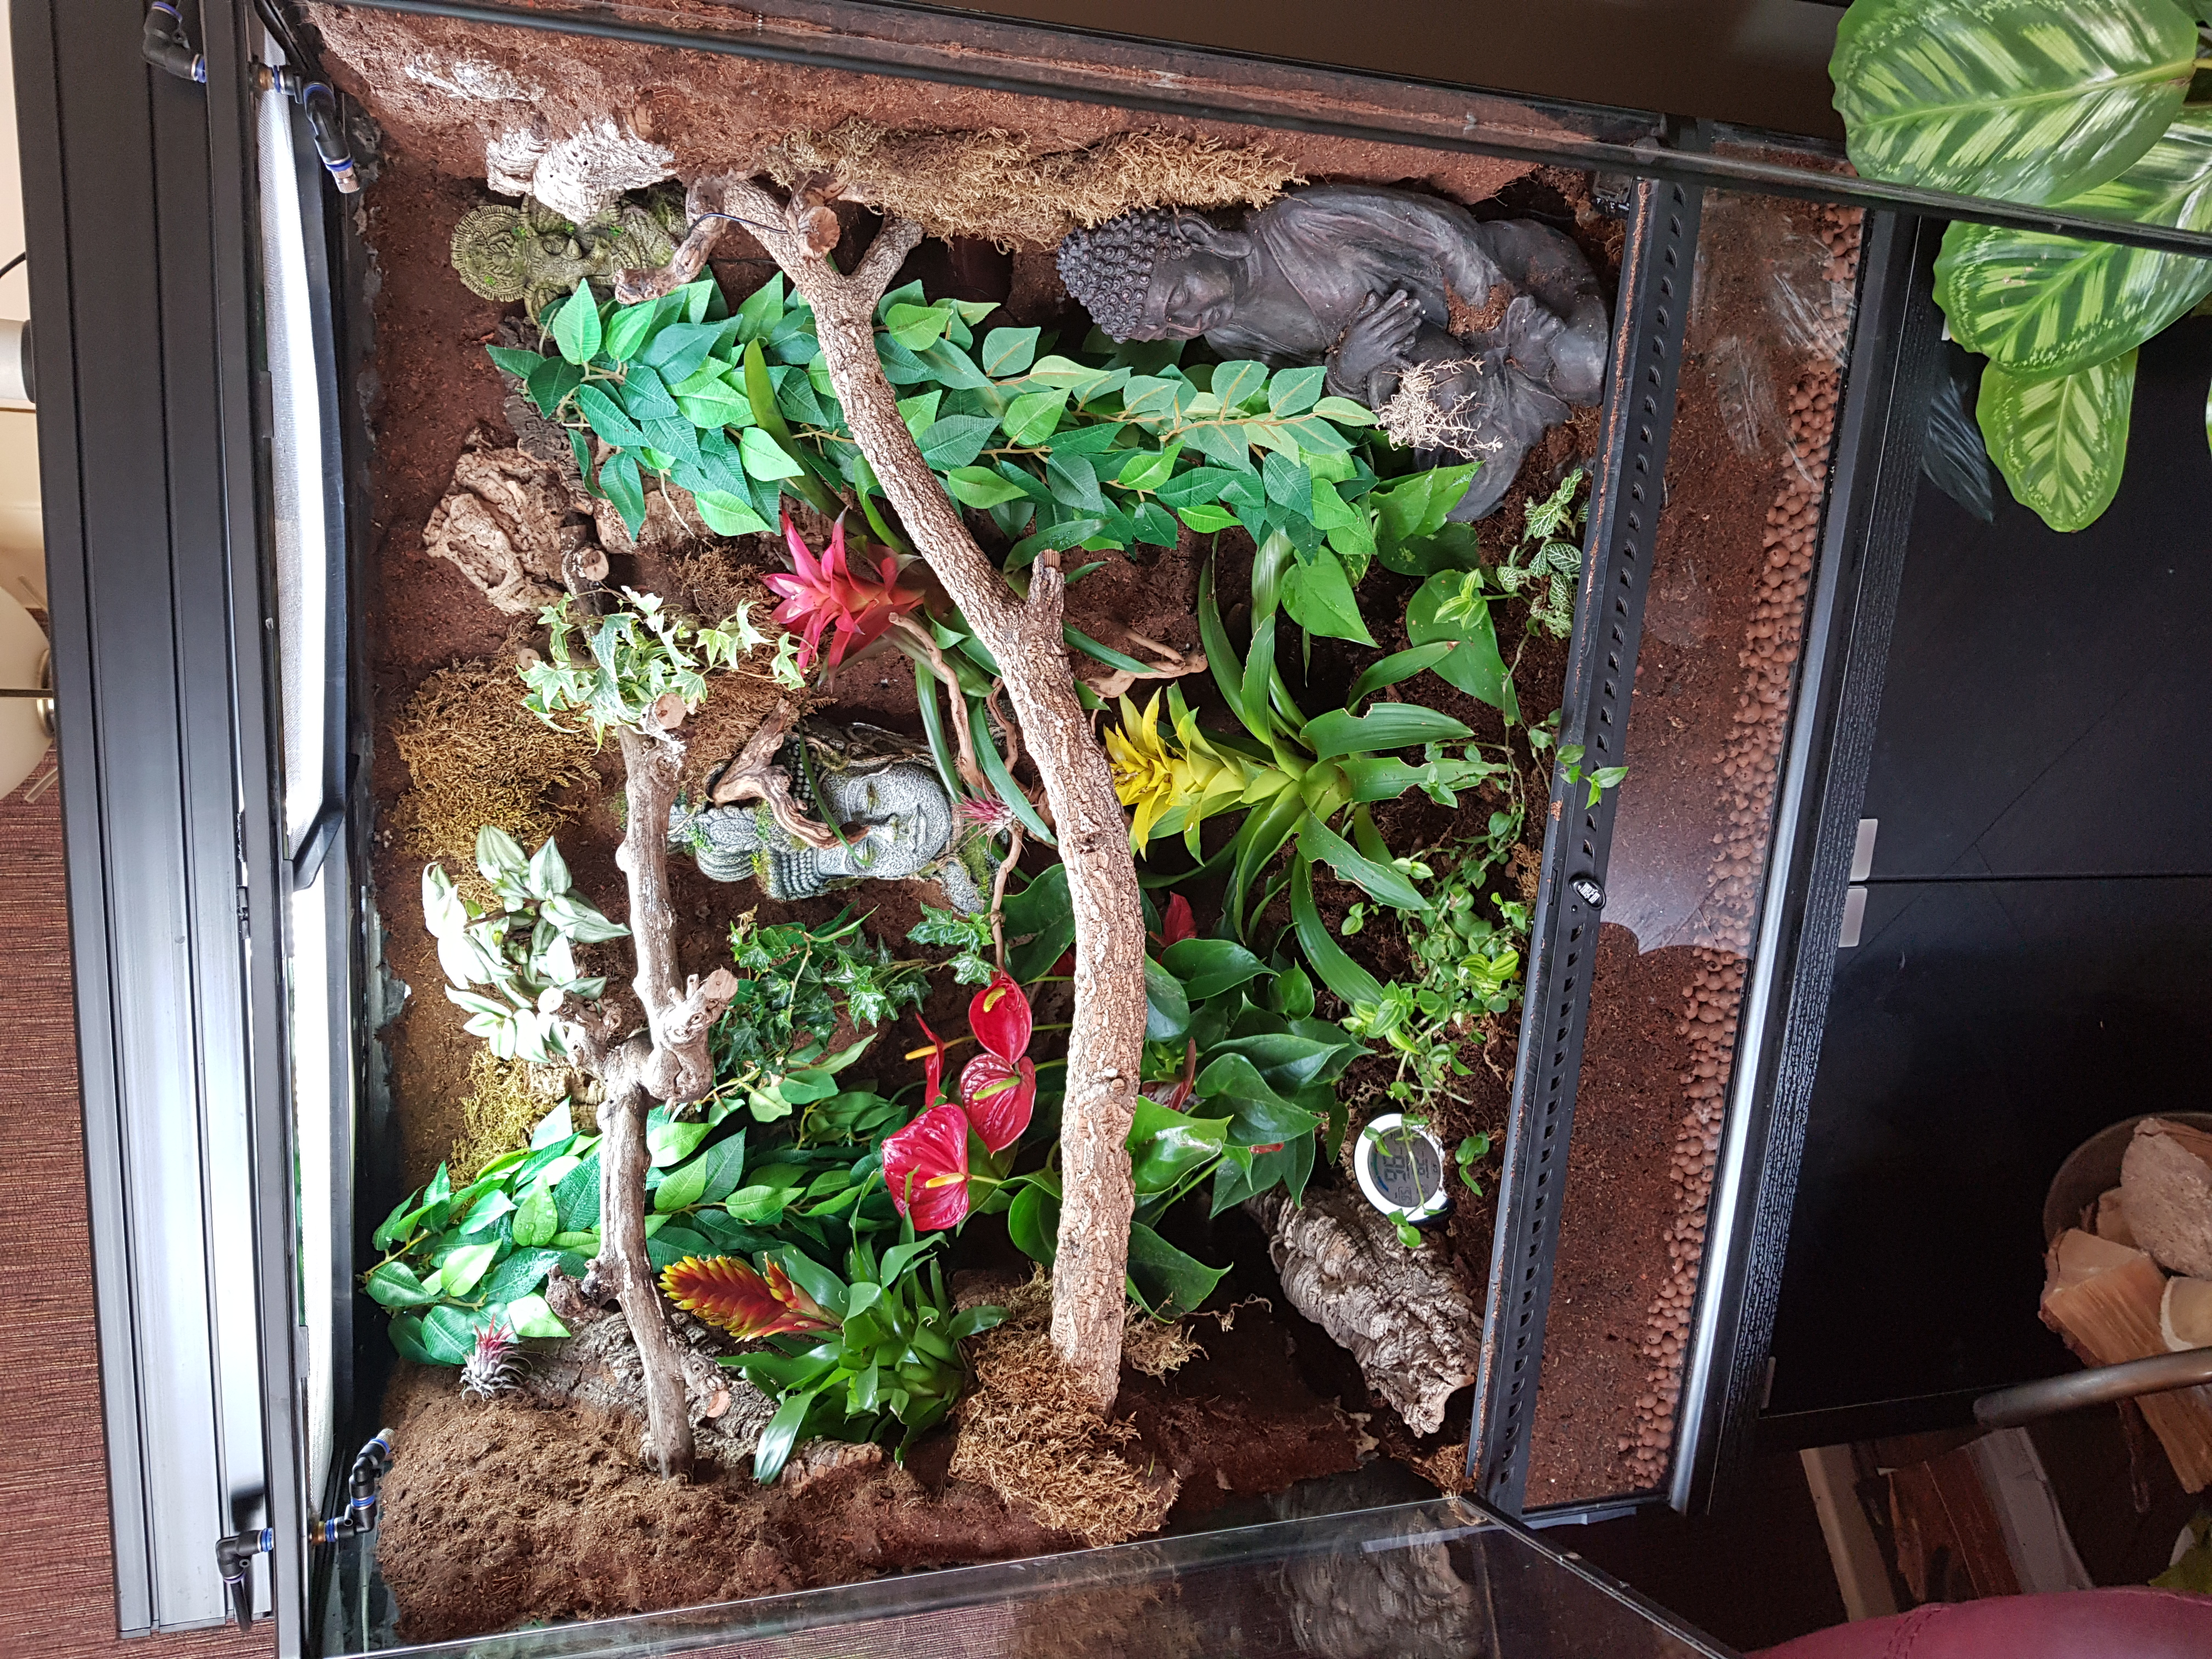 Show Me Your Viv Setups!!-20190408_102112_1556629768479.jpg